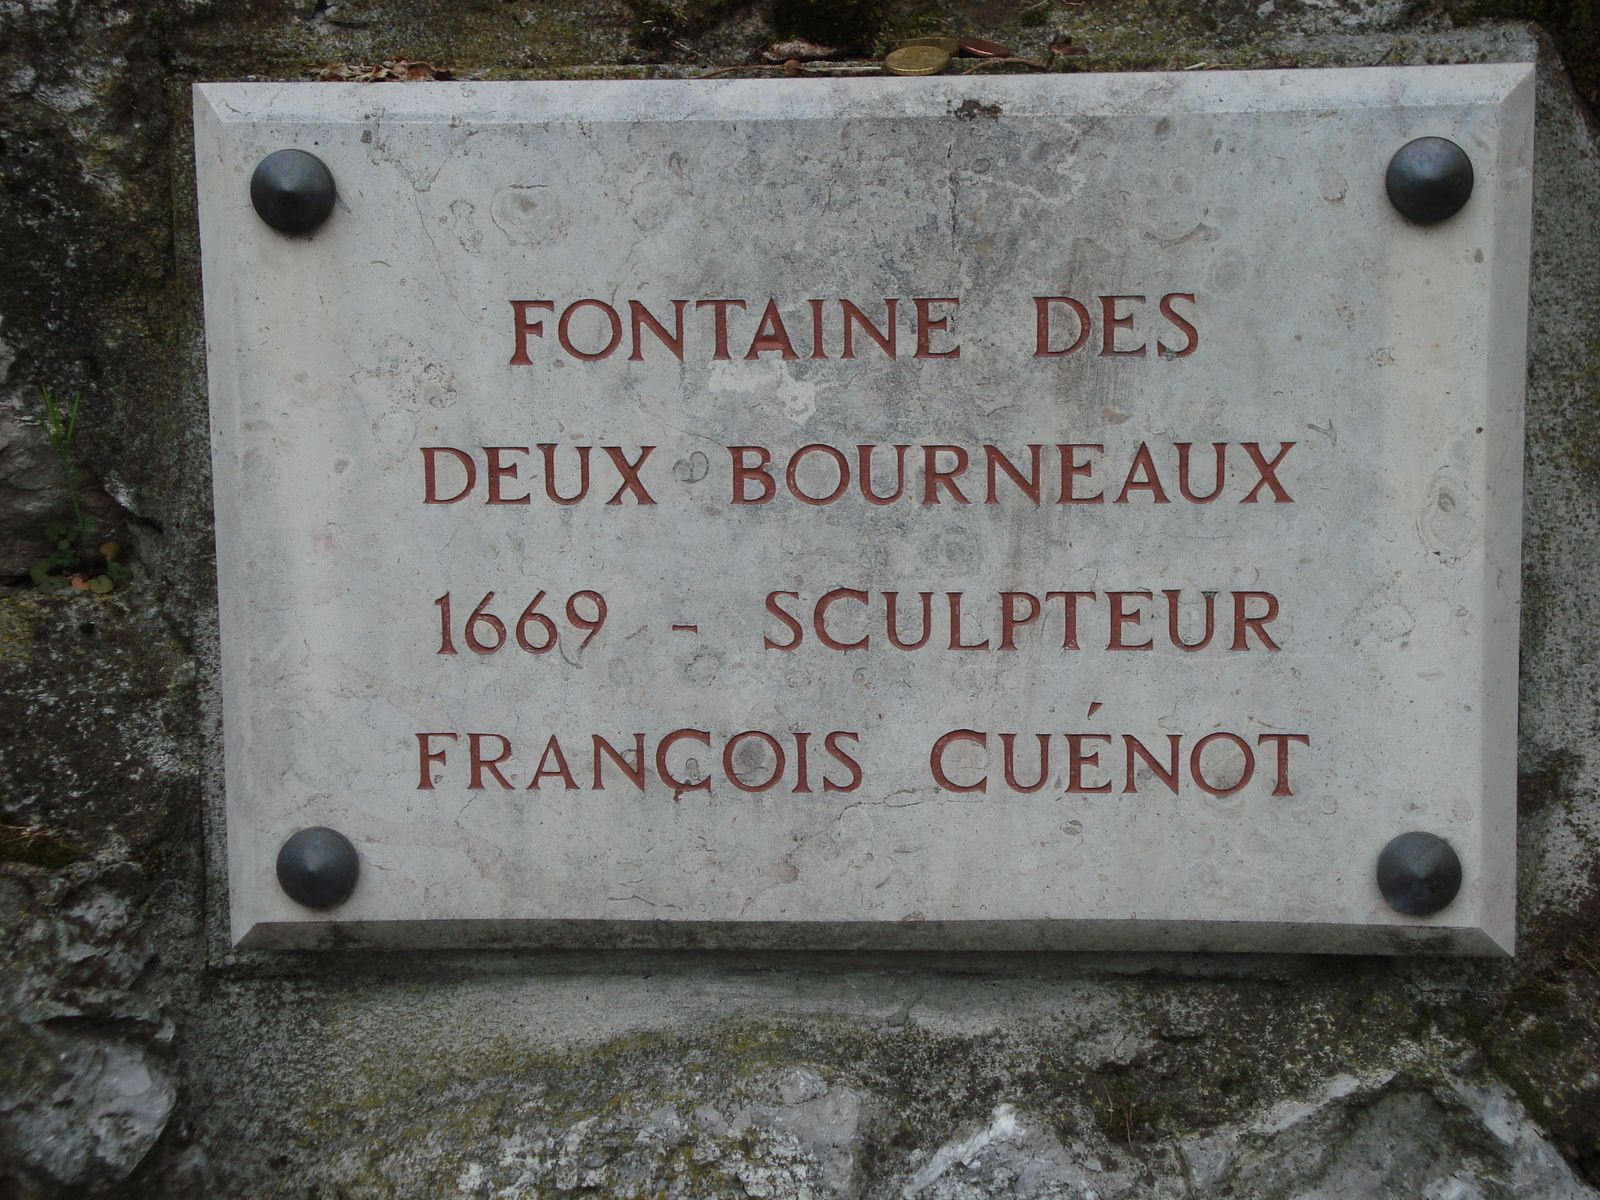 Croix, fontaine et inscriptions, photos J.D. 2 avril 2017